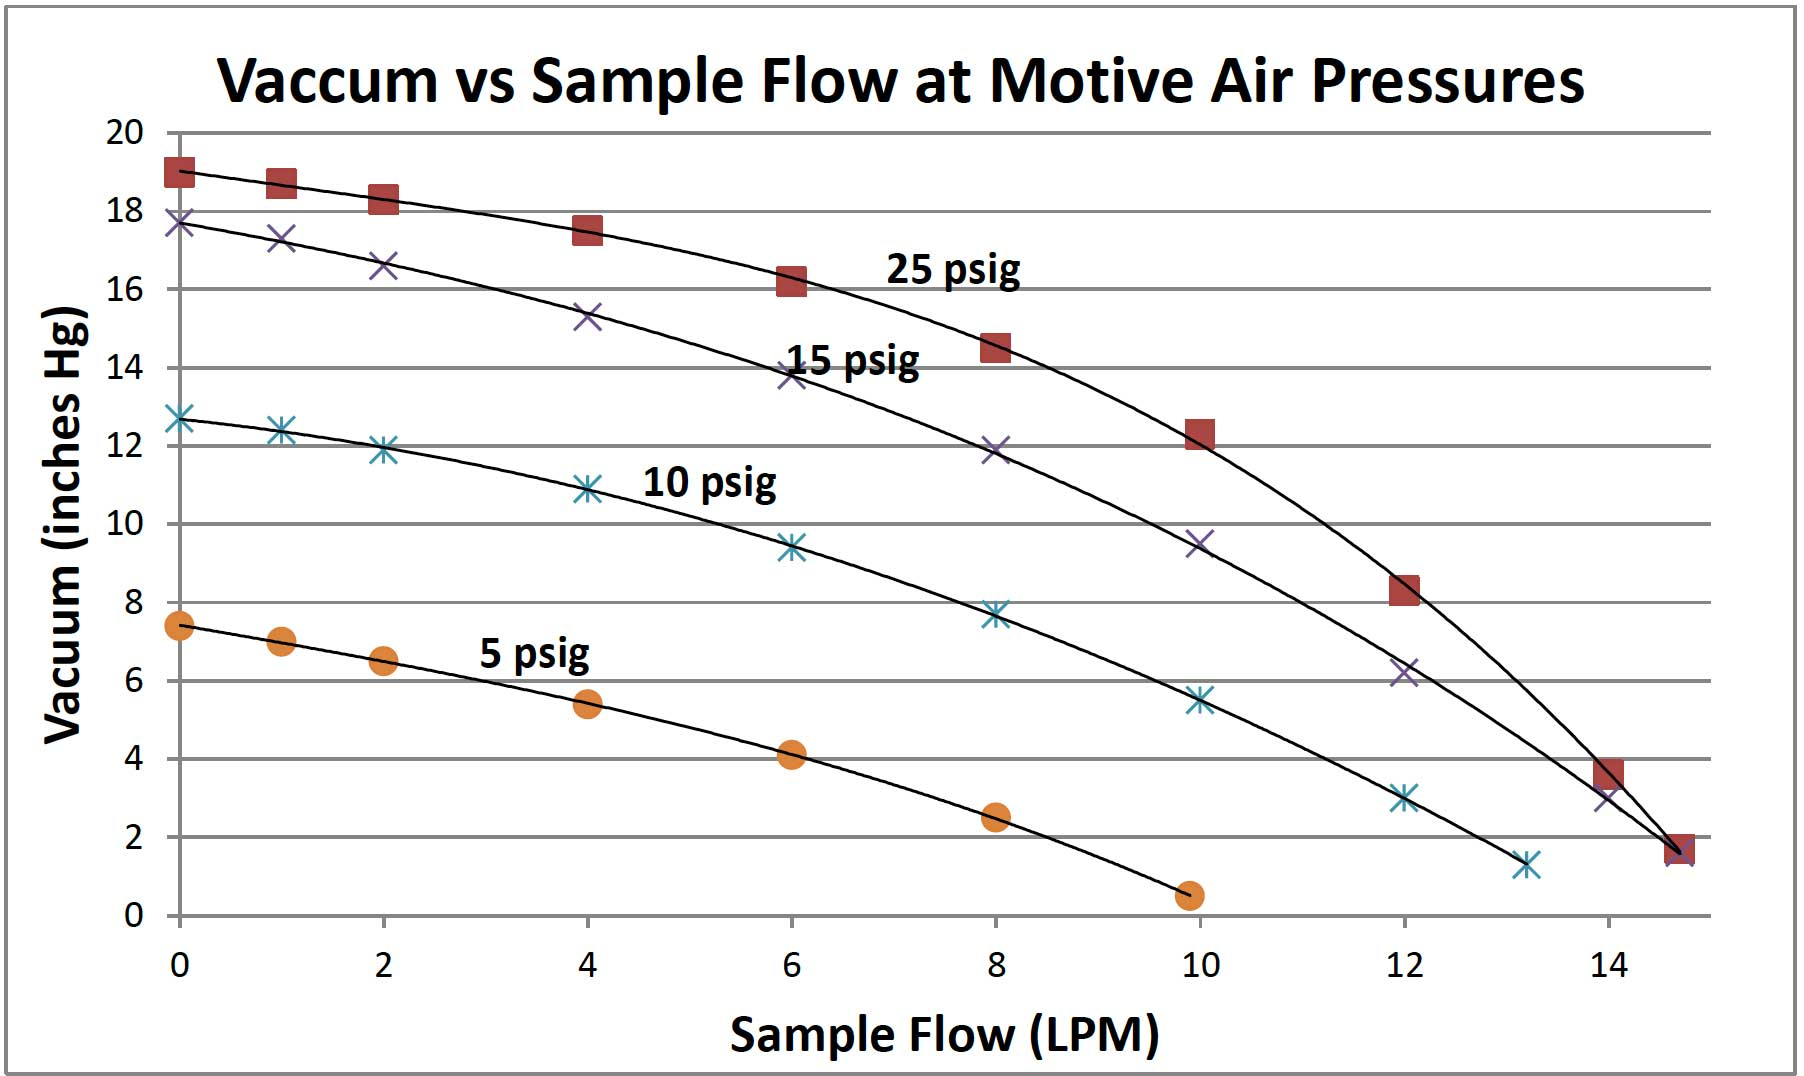 Vacuum vs. Sample Flow at Motive Air Pressures